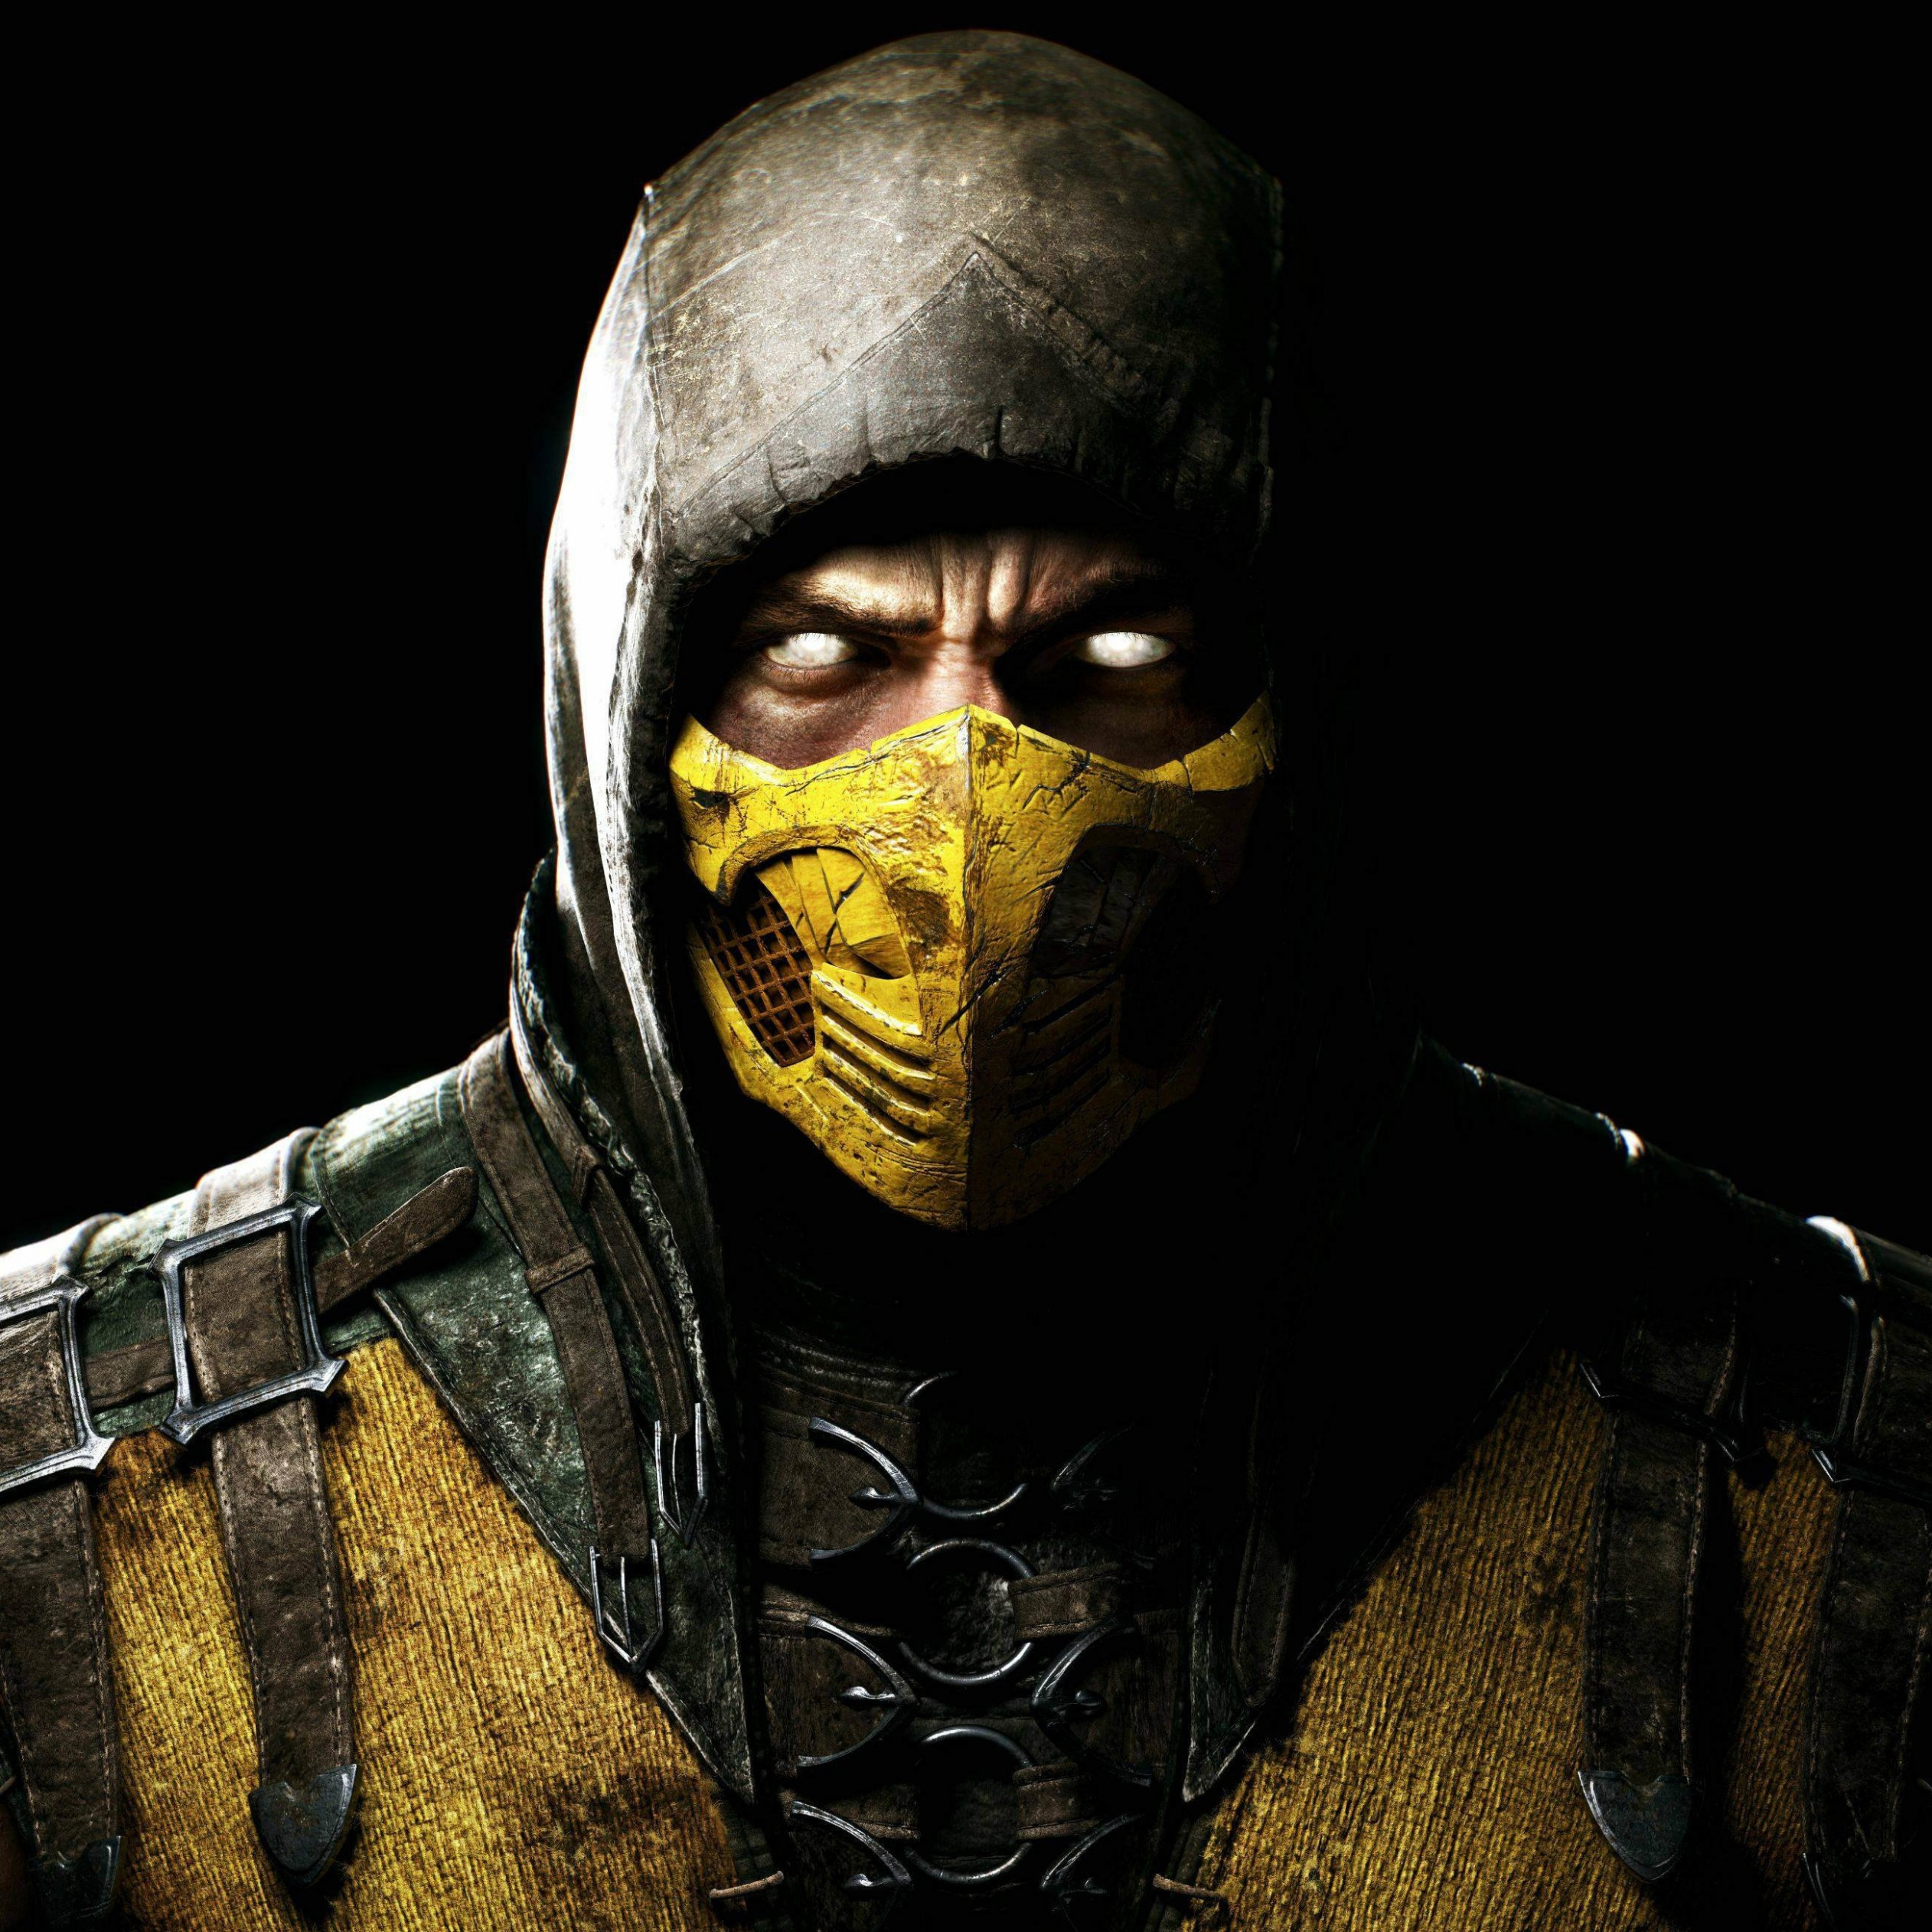 Scorpion Mortal Kombat X Wallpaper for Apple iPad mini 2